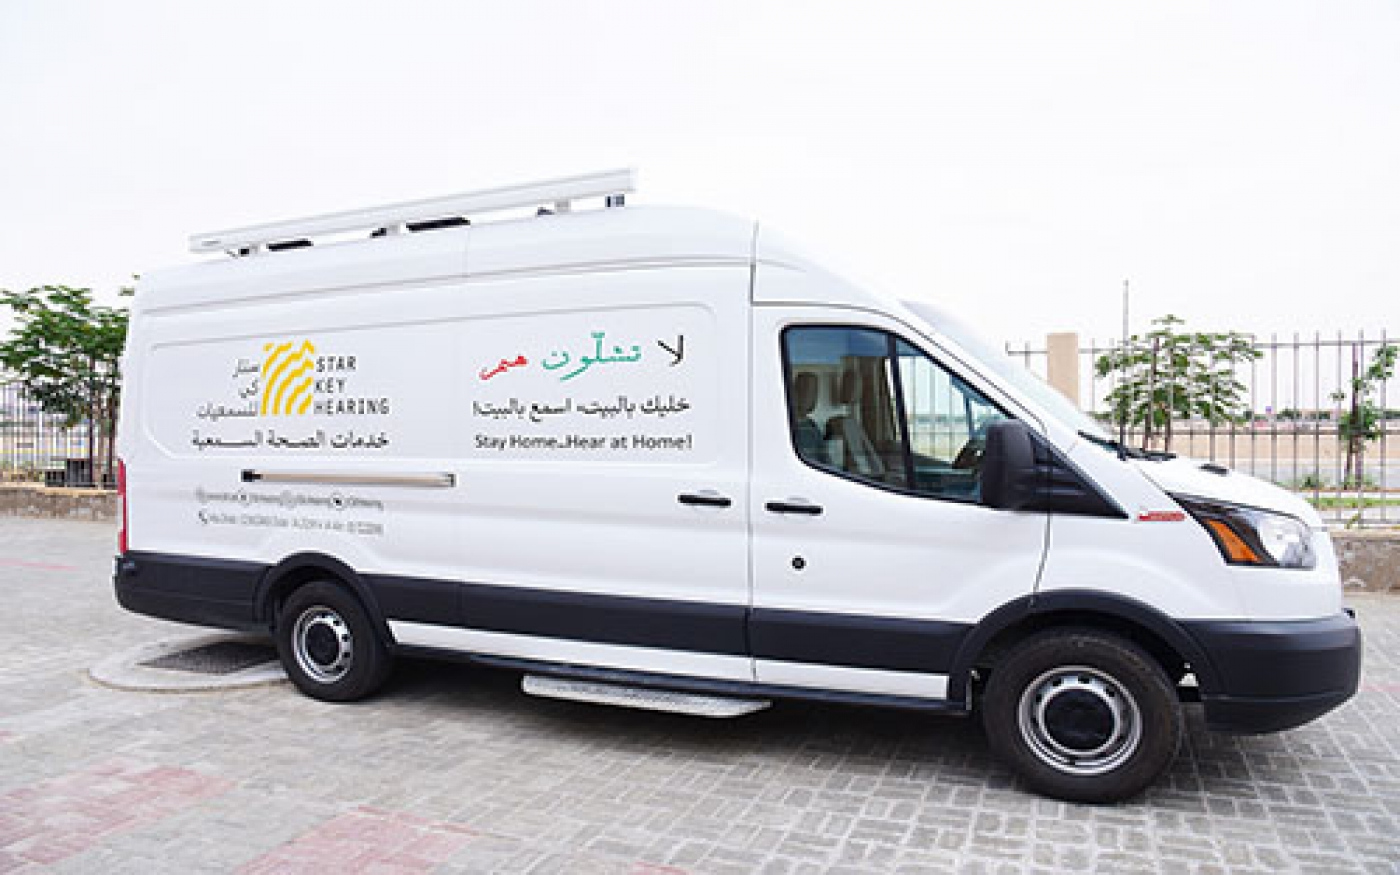 First Mobile Hearing Center in UAE